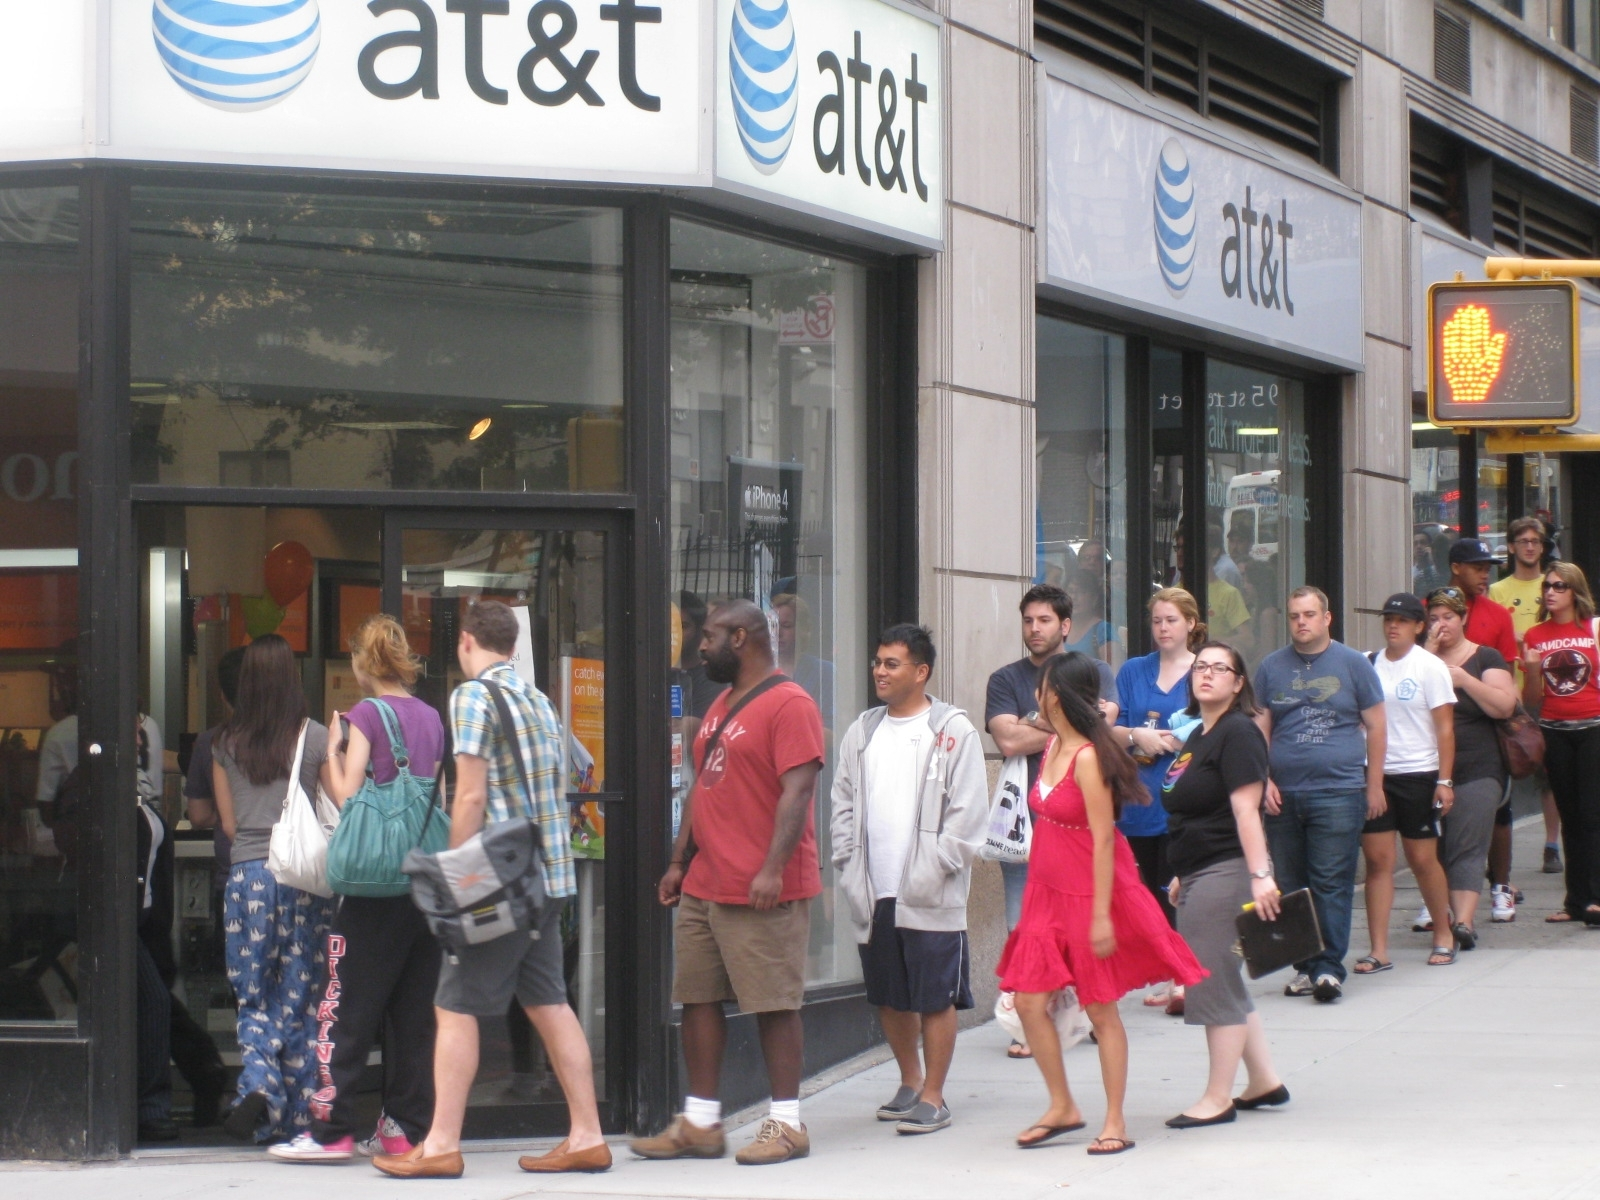 Dozens of people lined up early Tuesday morning in front of this AT&T store to get the new iPhone 4. The store was sold out of the phones by 7:30 a.m., a half hour after it opened.